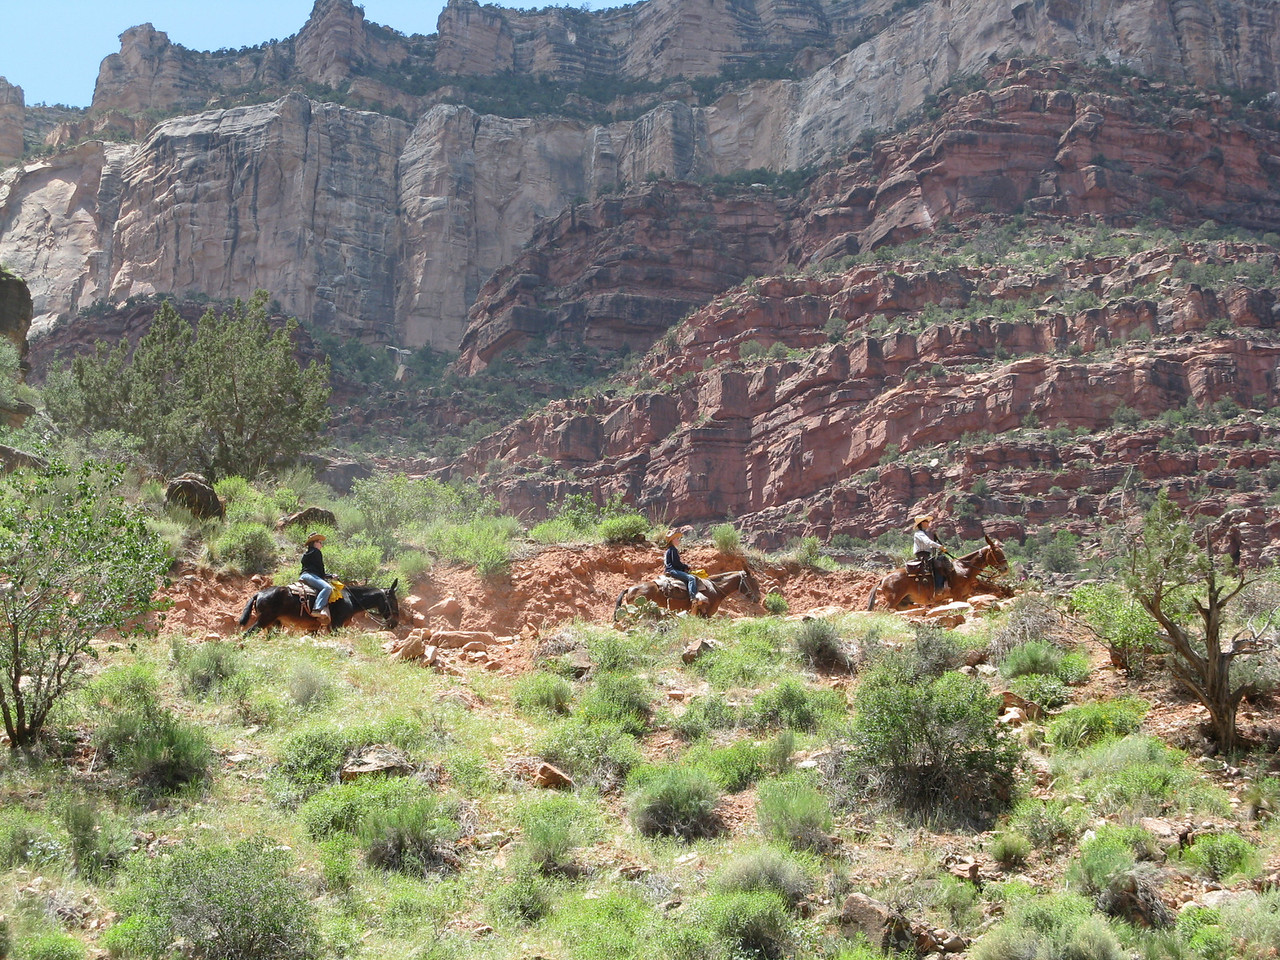 Shortly after passing us, we can see the mules on the trail far above us.